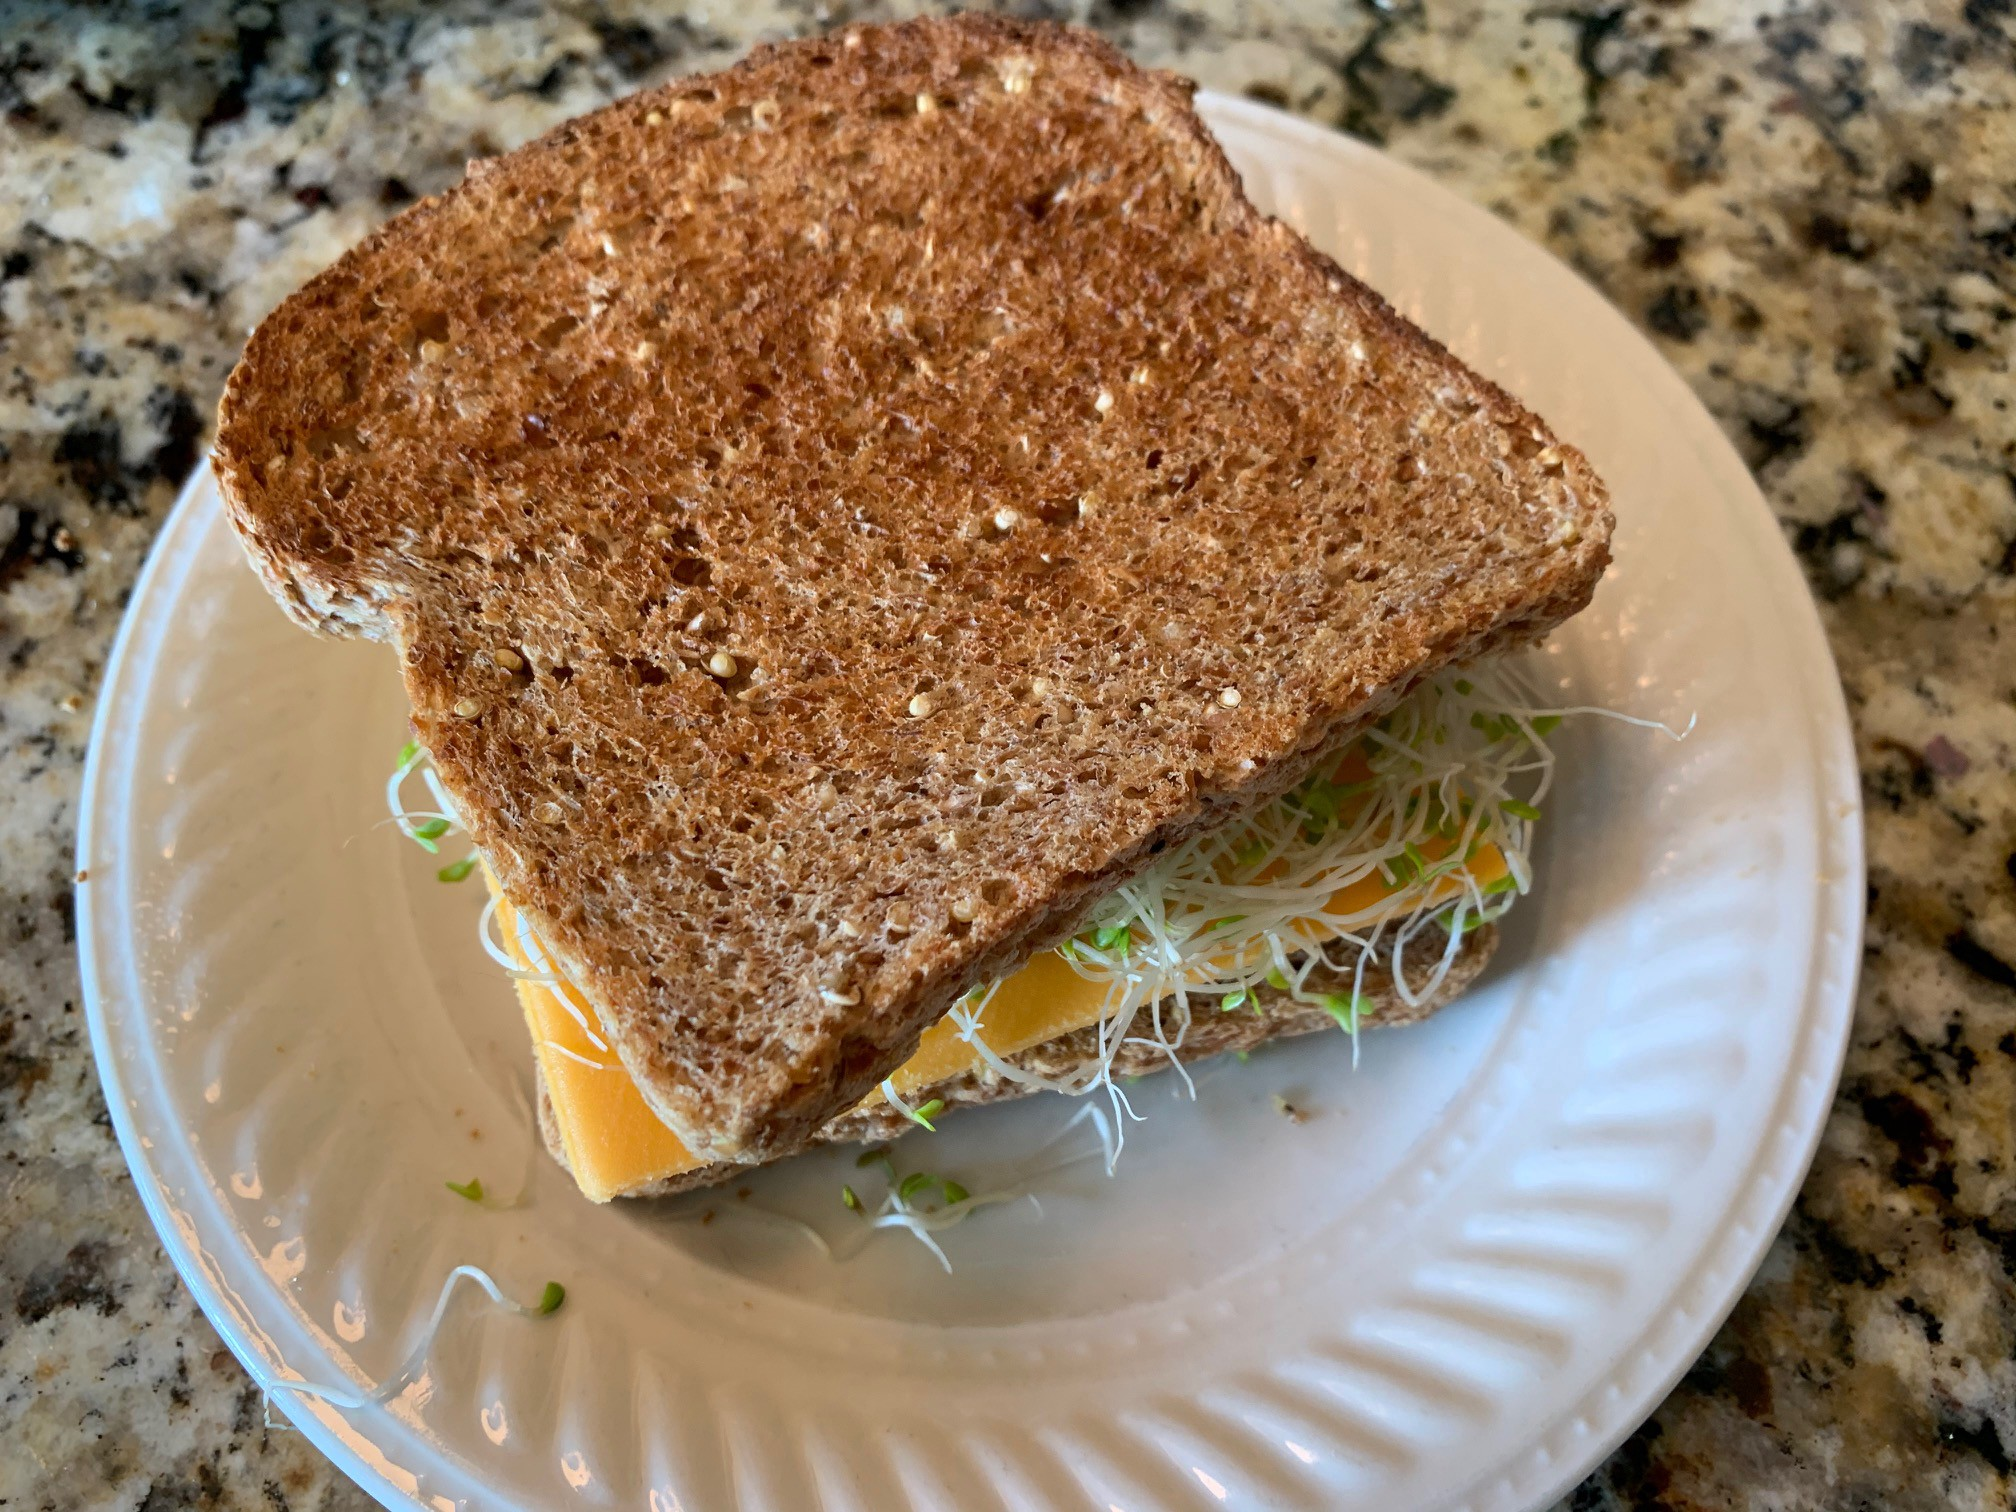 6 Delicious Plant Based Ezekiel Bread Sandwich Recipes By Orianna Nienan Medium